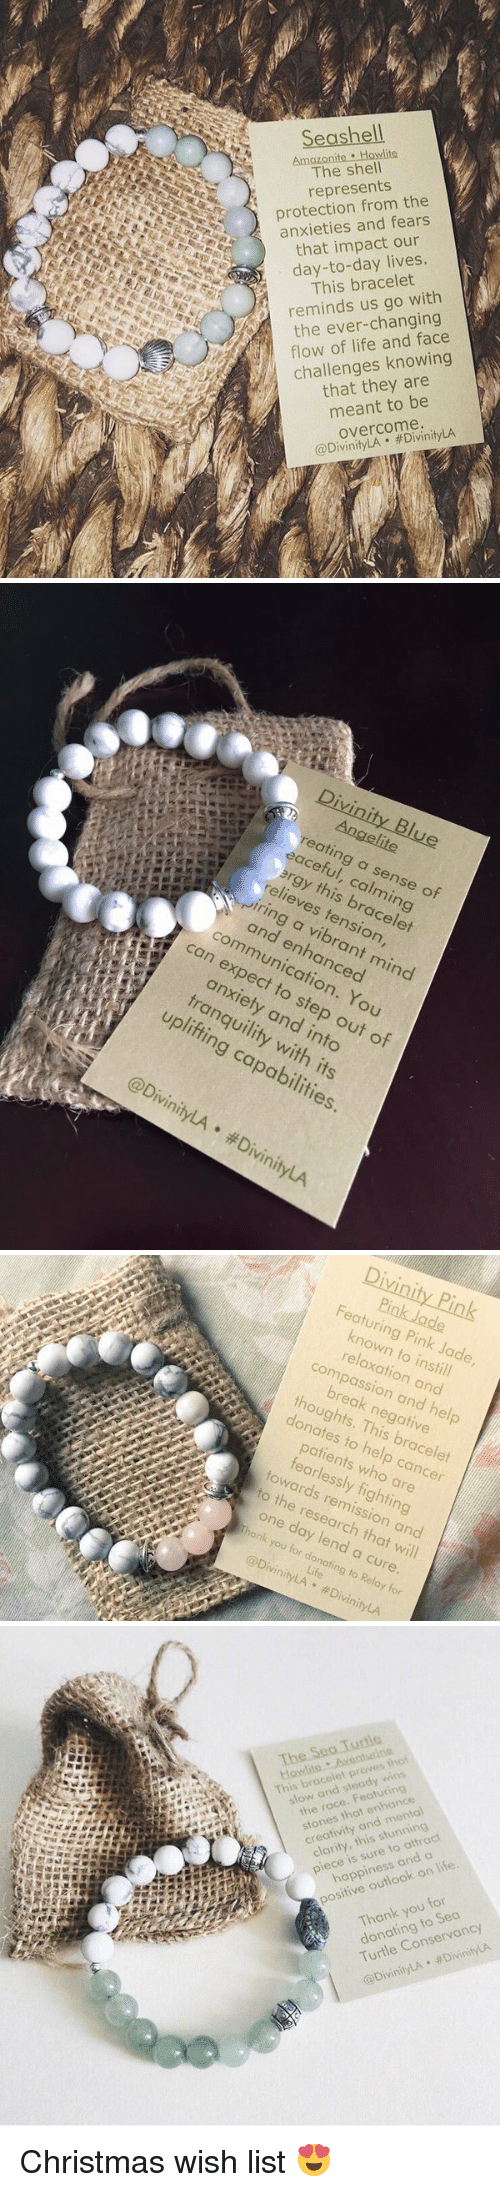 steady-wins-the-race: Seashell  Howlite  The shell  represents  protection from the  anxieties and fears  that impact our  day-to-day lives.  This bracelet  reminds us go with  the ever-changing  flow of life knowing  challenges that they are  meant to be  overcome.  @DivinityLA  Divinity Blue  reating a this sense of  relieves 6  tension,  r and a expect enhanced  can mind  to You  tranquility step of  into  and out with obil  its  Divinity LA DivinityLA   Divinity Pink  Featuring Pink Jade  known to instill  relaxation and  compassion and hel  break negative  thoughts. This bracelet  donates to help cancer  patients who are  fearlessly fighting  towards remission and  to the research that will  one day lend a cure  onk you for donating to Relay for  Life  @DivinityLA #DivinityLA   The-Sea-Turtle  owlite .Aseanturi  This bracelet proves that  slew and steady wins  the race. Featuring  stones that enhance  creativity and mental  clarity, this stunning  piece is sure to attract  happiness and a  positive outlook on life.  Thank you for  donating to Sea  Turtle Conservancy  @DivinityLA DivinityLA Christmas wish list 😍